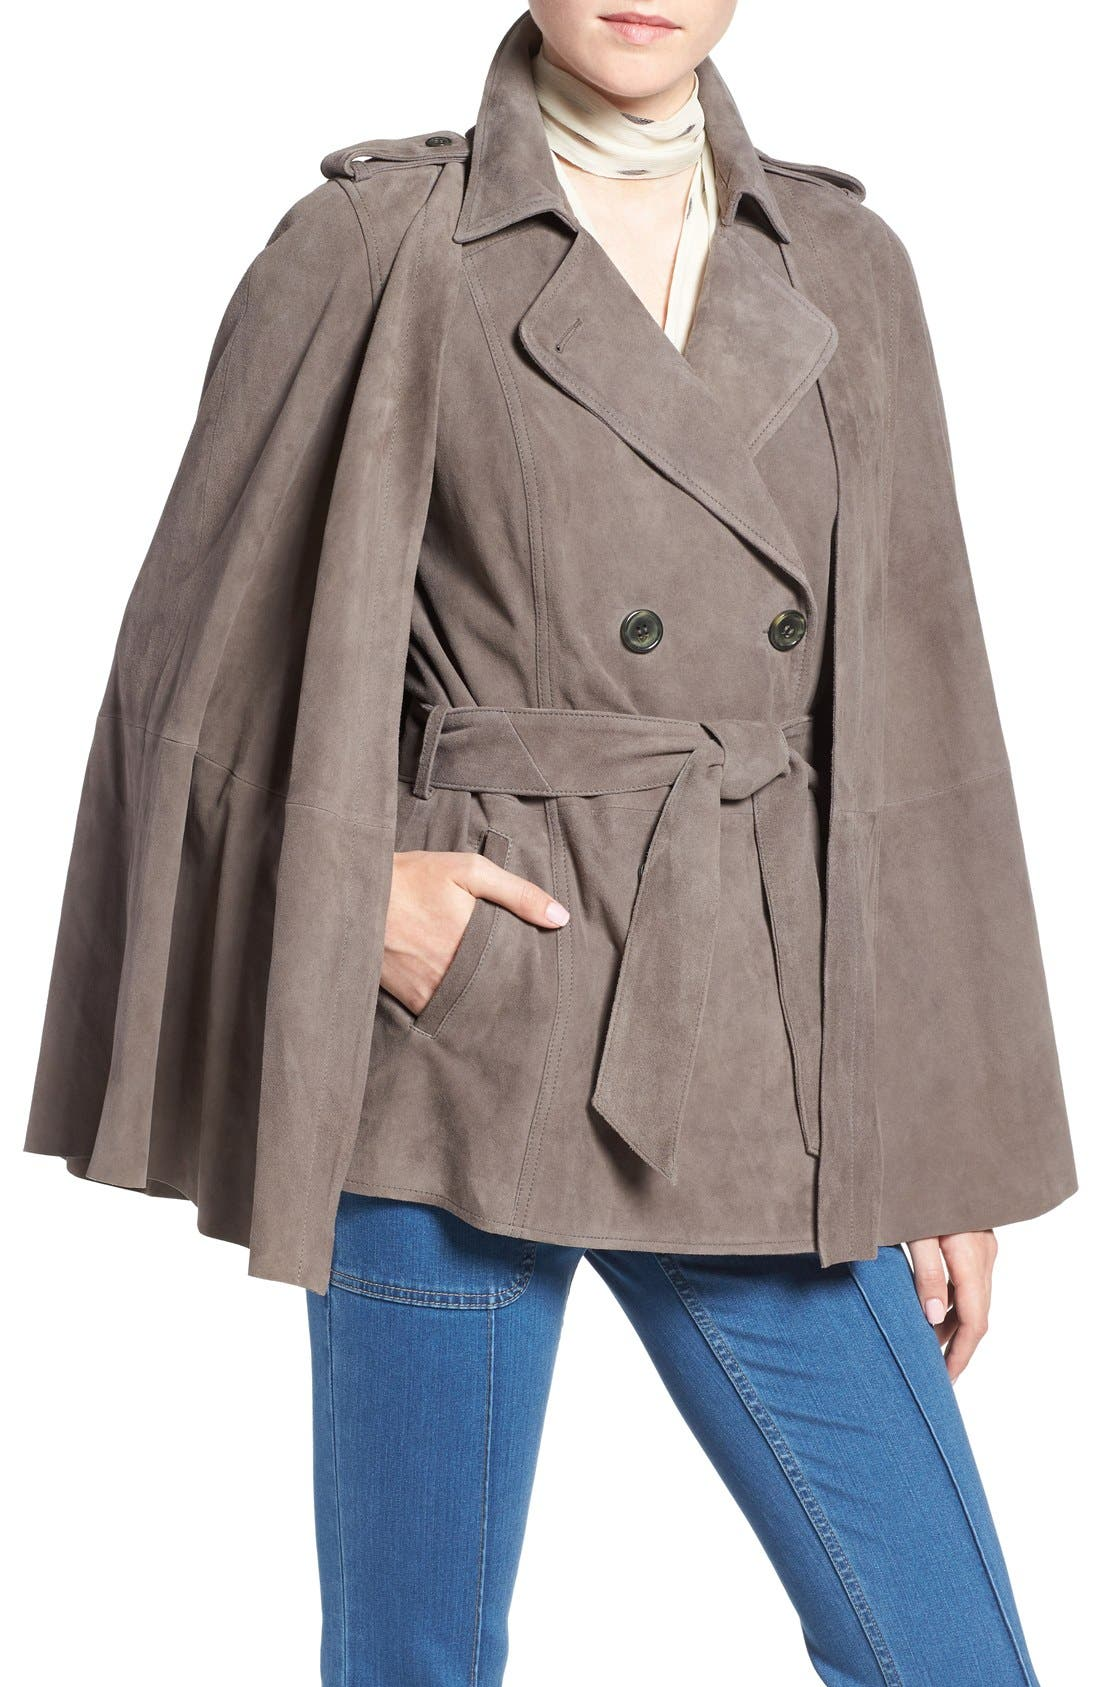 Alternate Image 1 Selected - Olivia Palermo + Chelsea28 Suede Trench Vest with Removable Cape